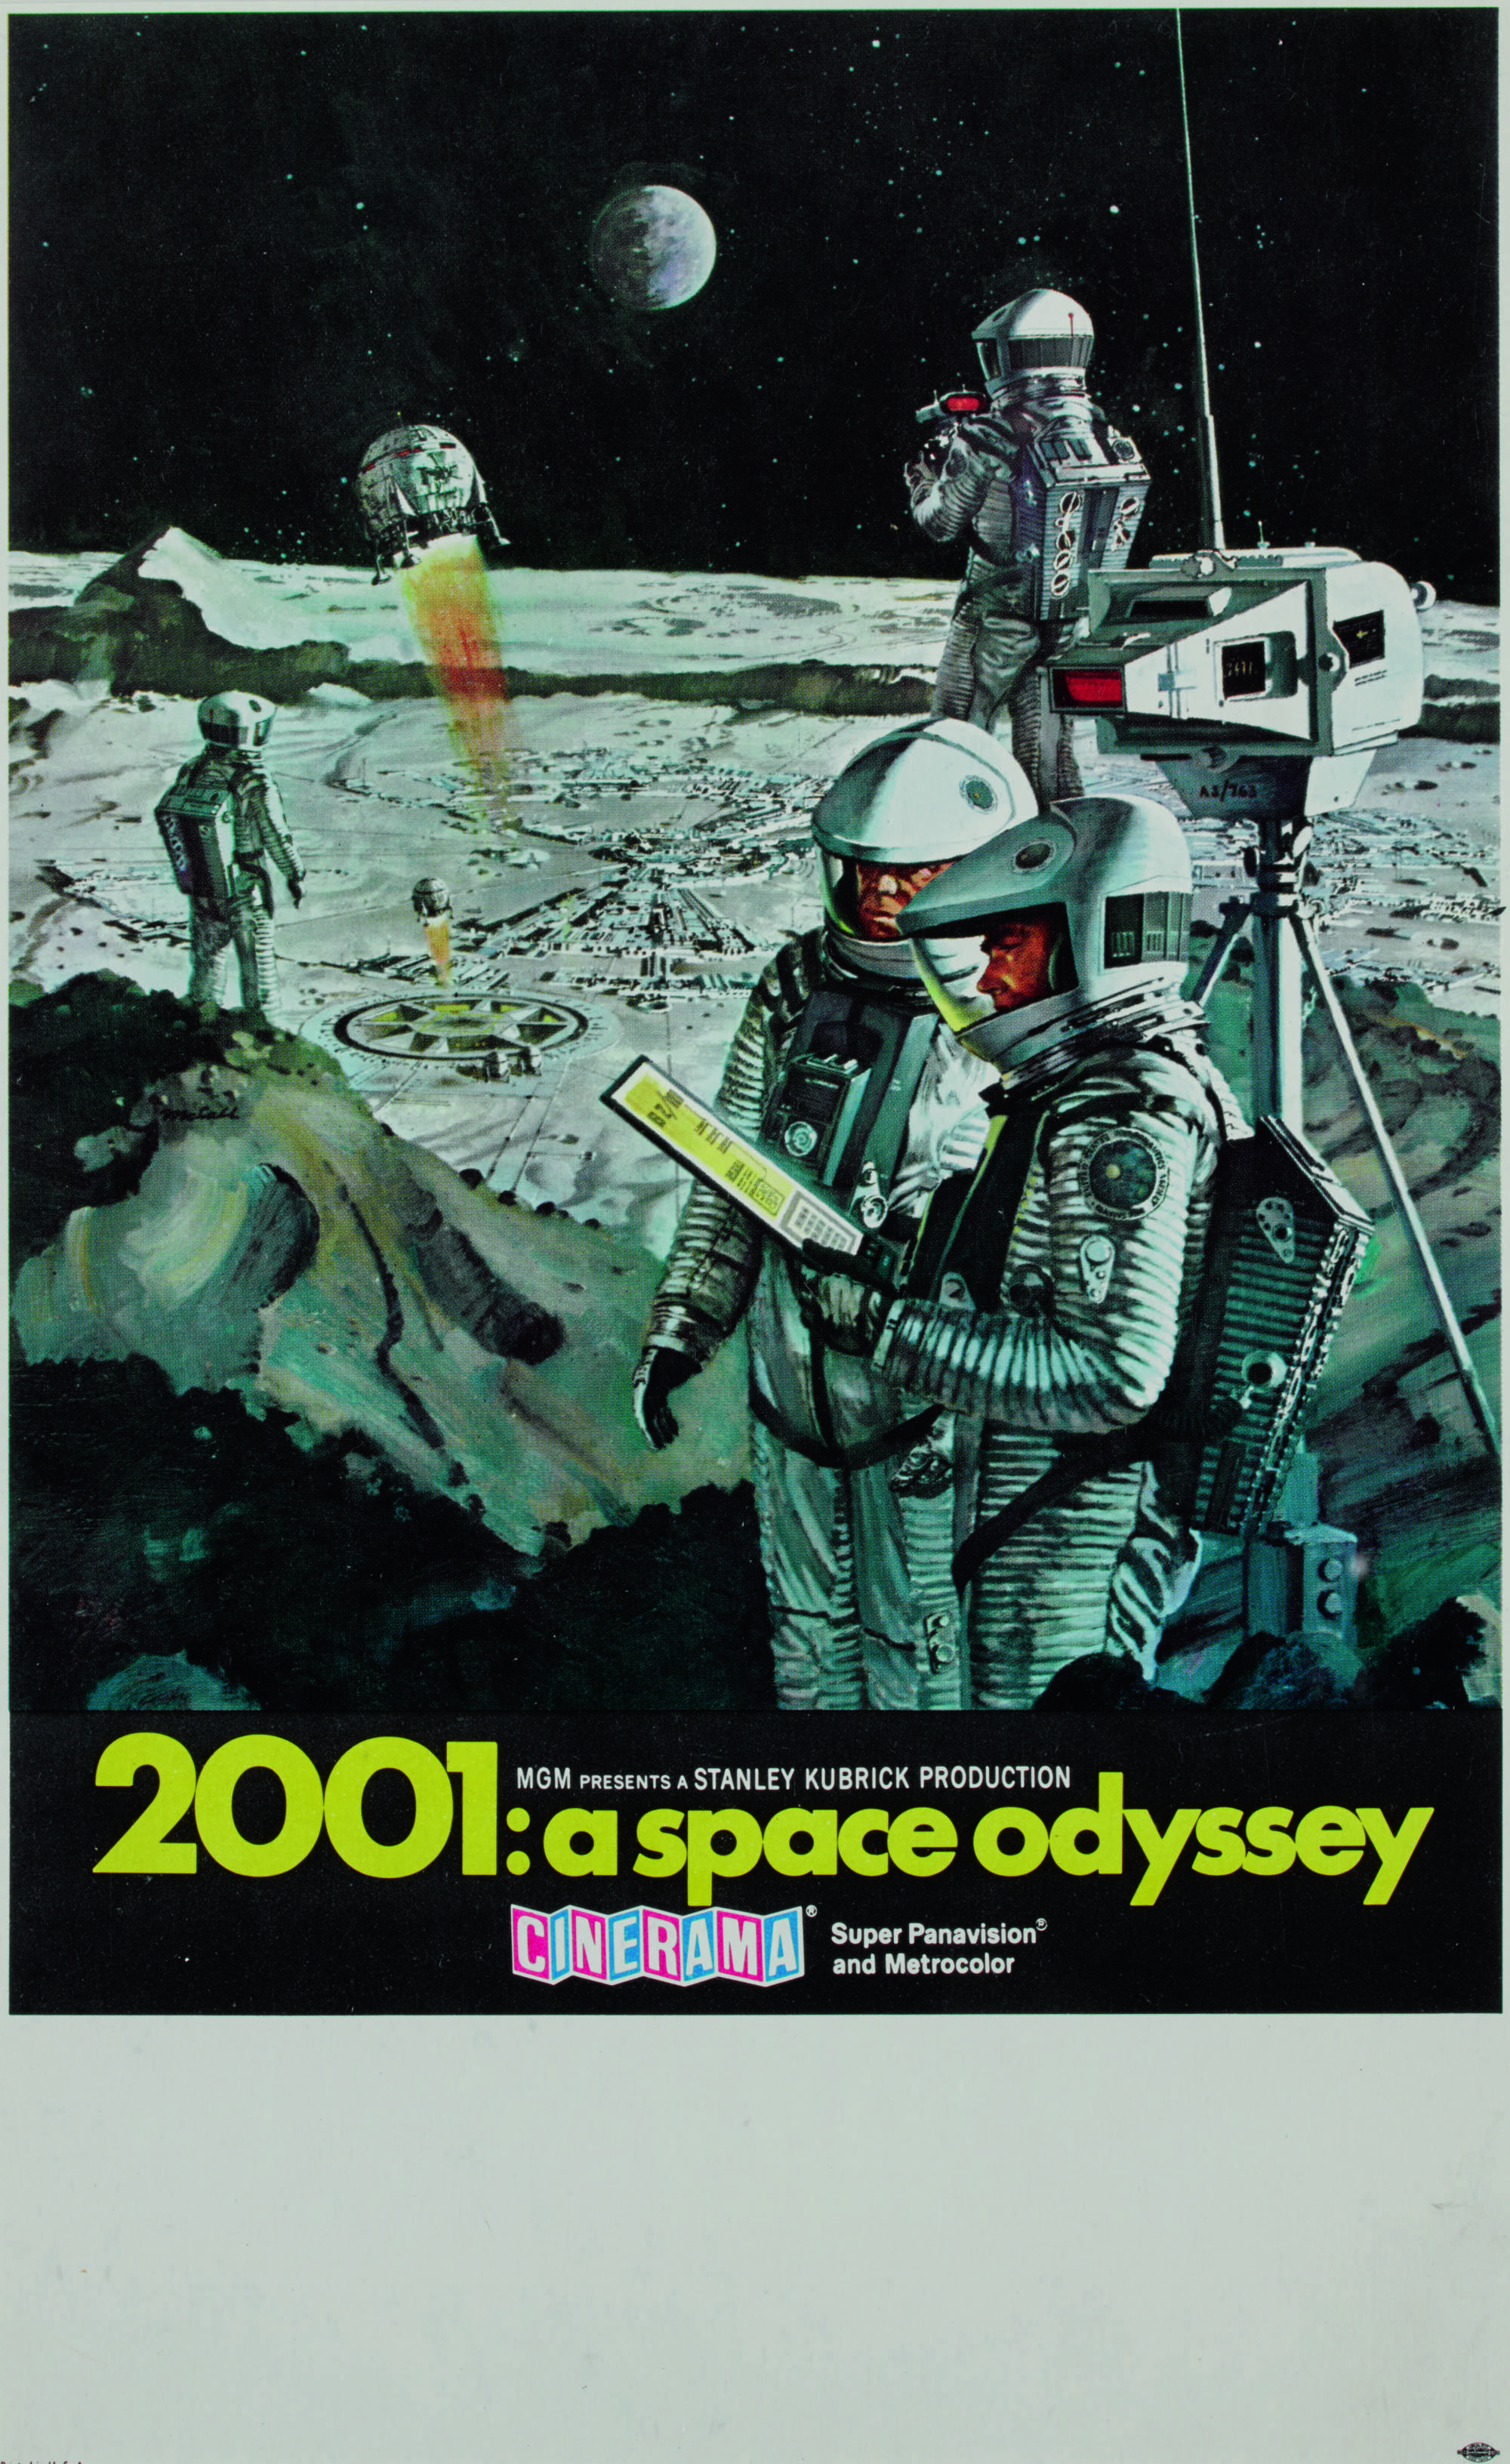 2001: A SPACE ODYSSEY (1968), POSTER, US